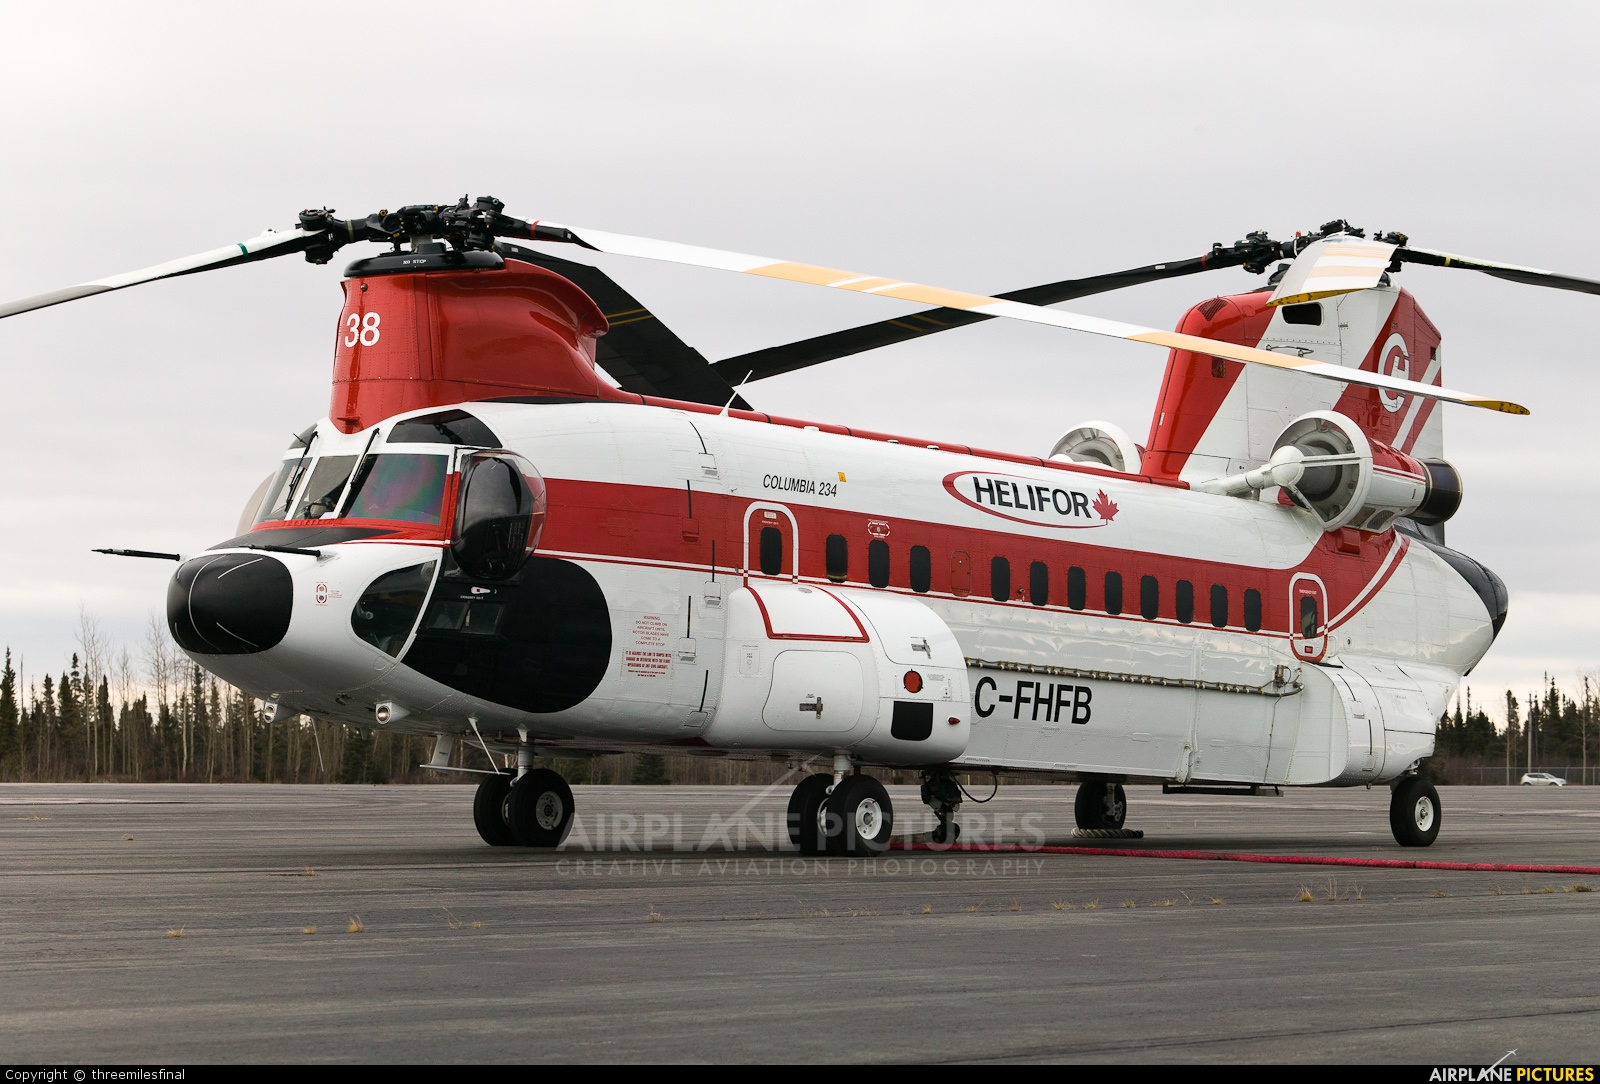 Columbia Helicopters C-FHFB aircraft at Goose Bay